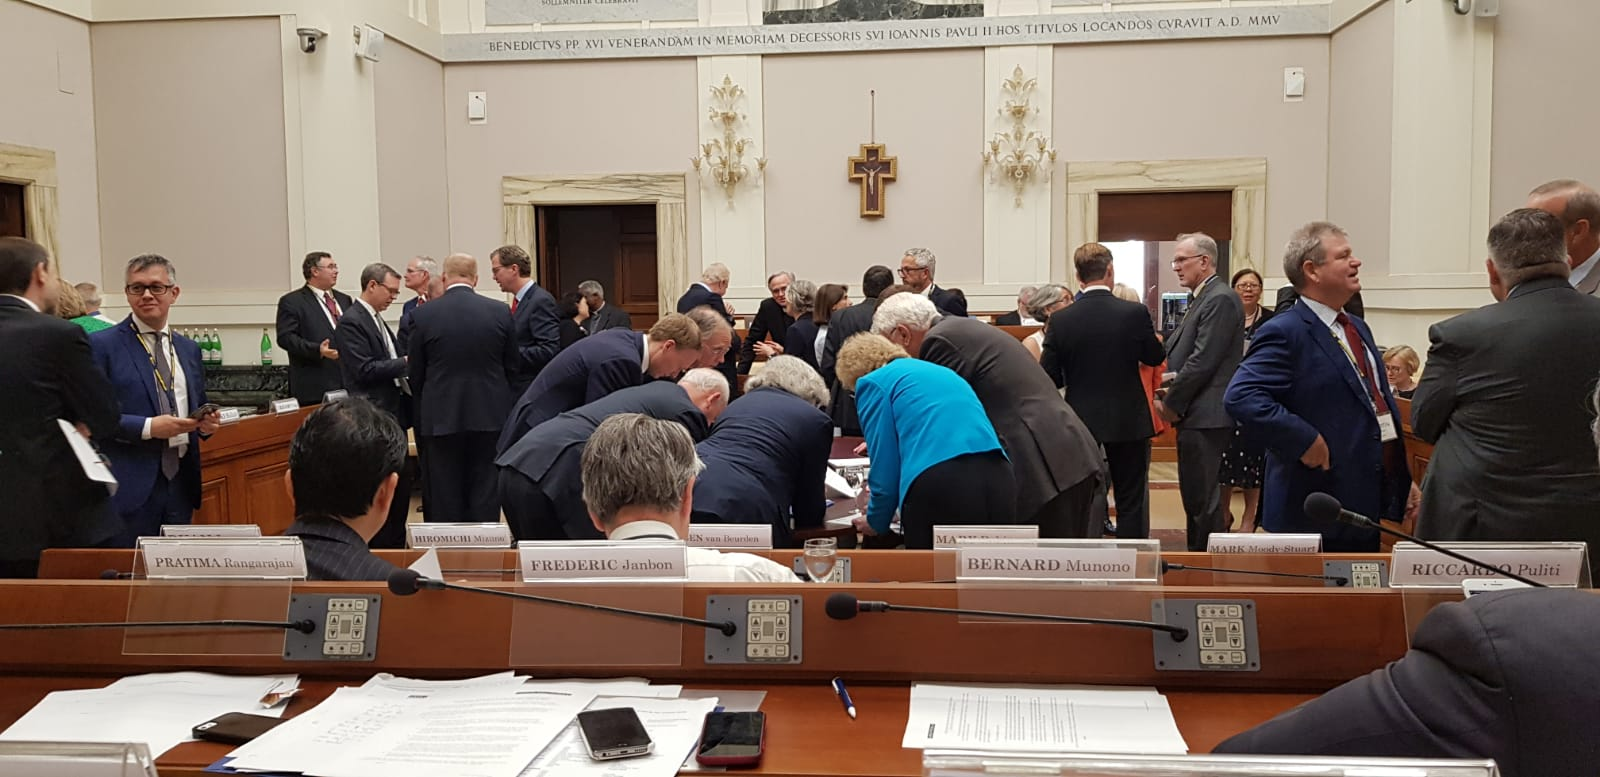 Energy CEOs sign joint statements at the Vatican on carbon pricing and climate risk disclosures